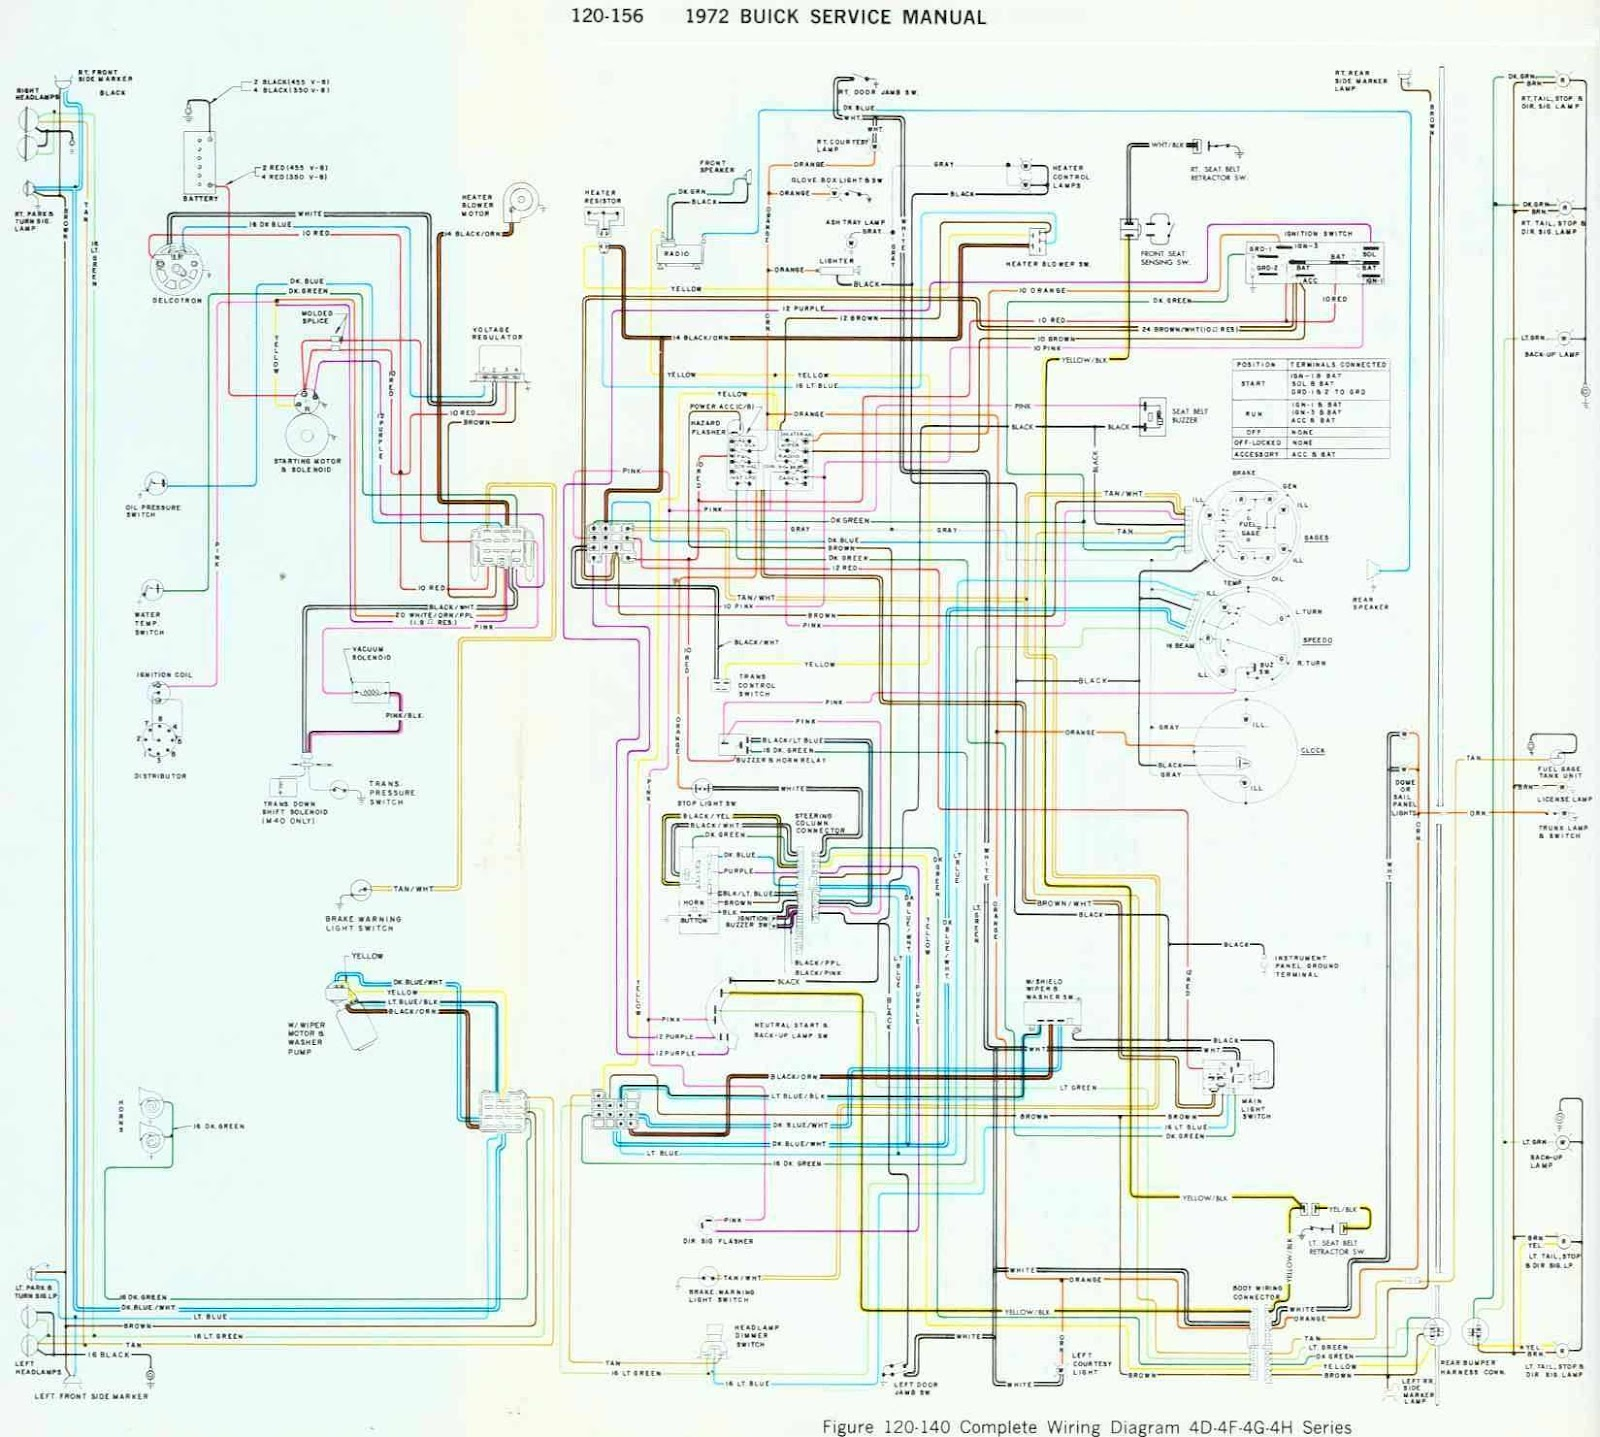 1972 Chevy Pickup Wiring Schematic - Trusted Wiring Diagram